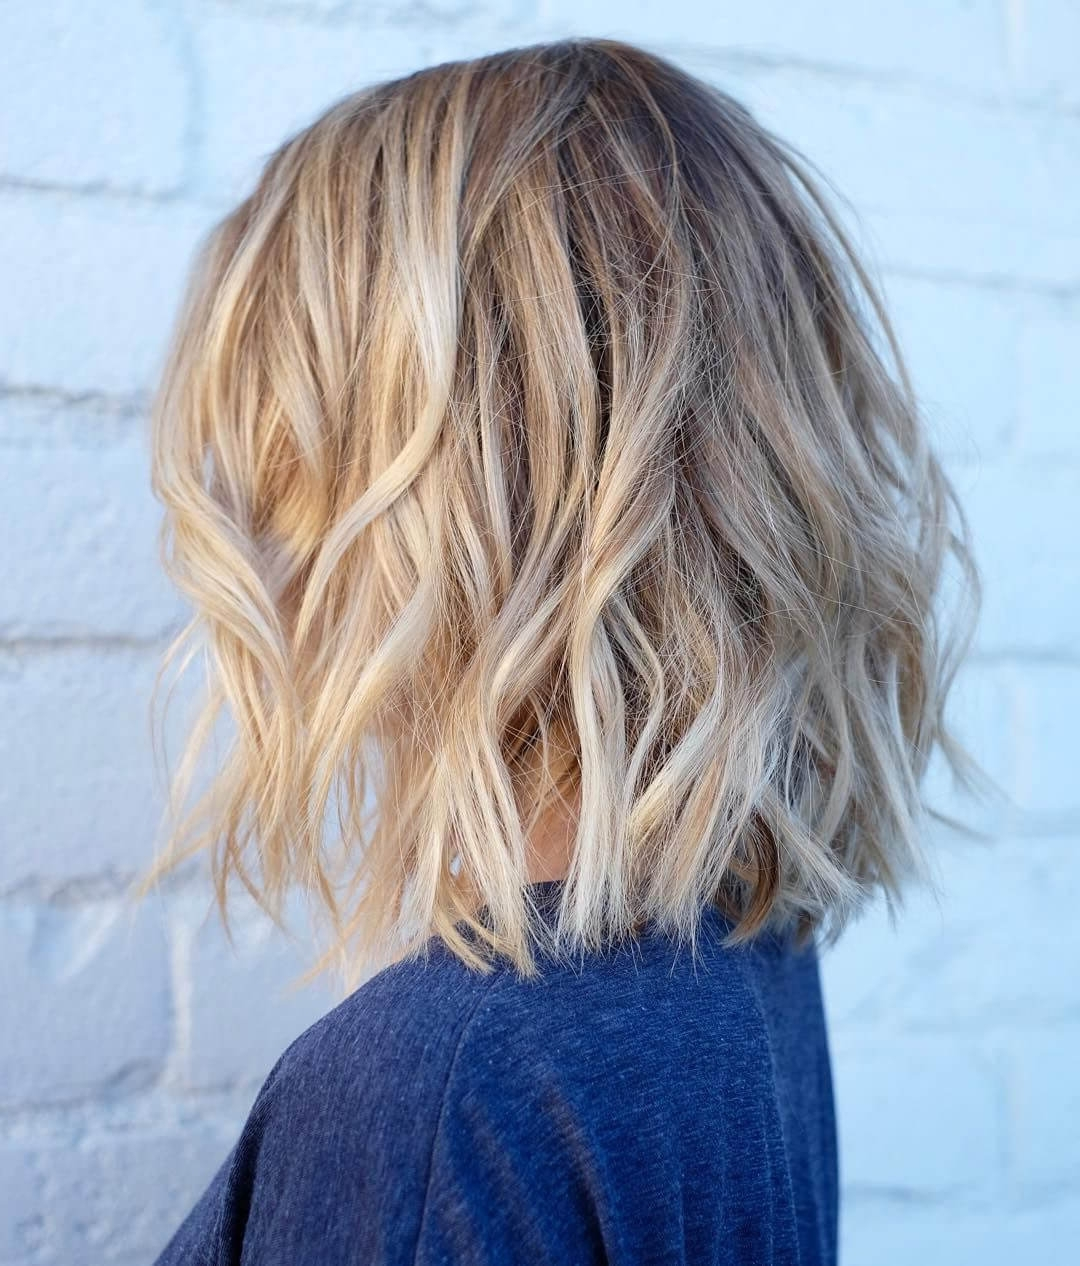 2018 Multi Tonal Mid Length Blonde Hairstyles With 50 Fresh Short Blonde Hair Ideas To Update Your Style In (View 7 of 20)